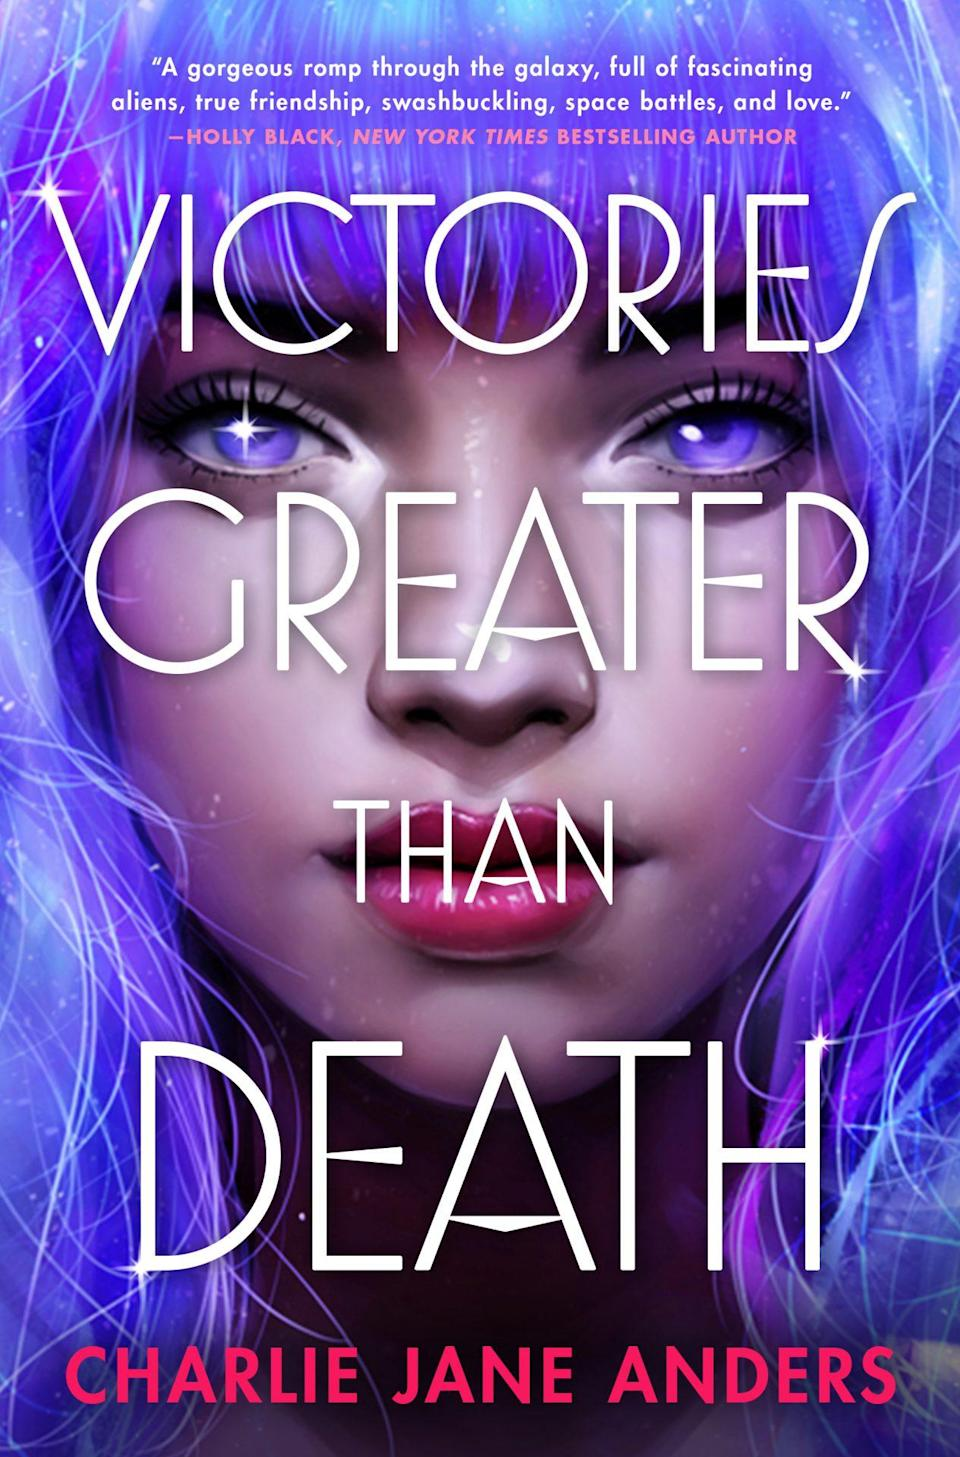 The cover of Charlie Jane Anders' new book VICTORIES GREATER THAN DEATH_1